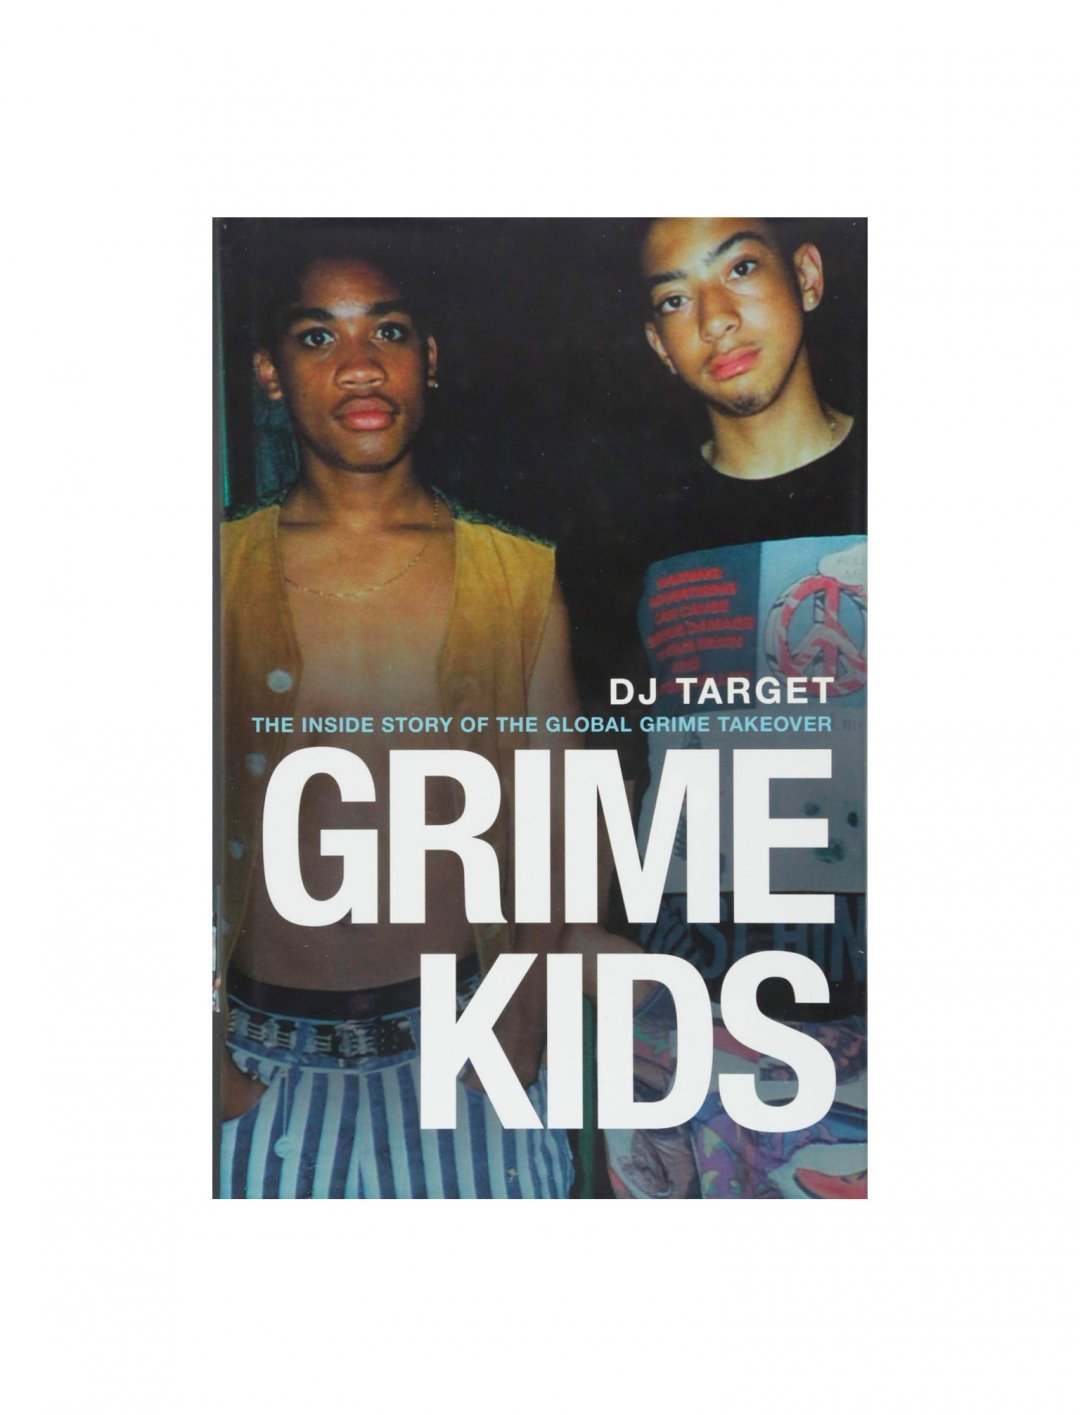 Grime Kids Book Books & e-readers DJ Target